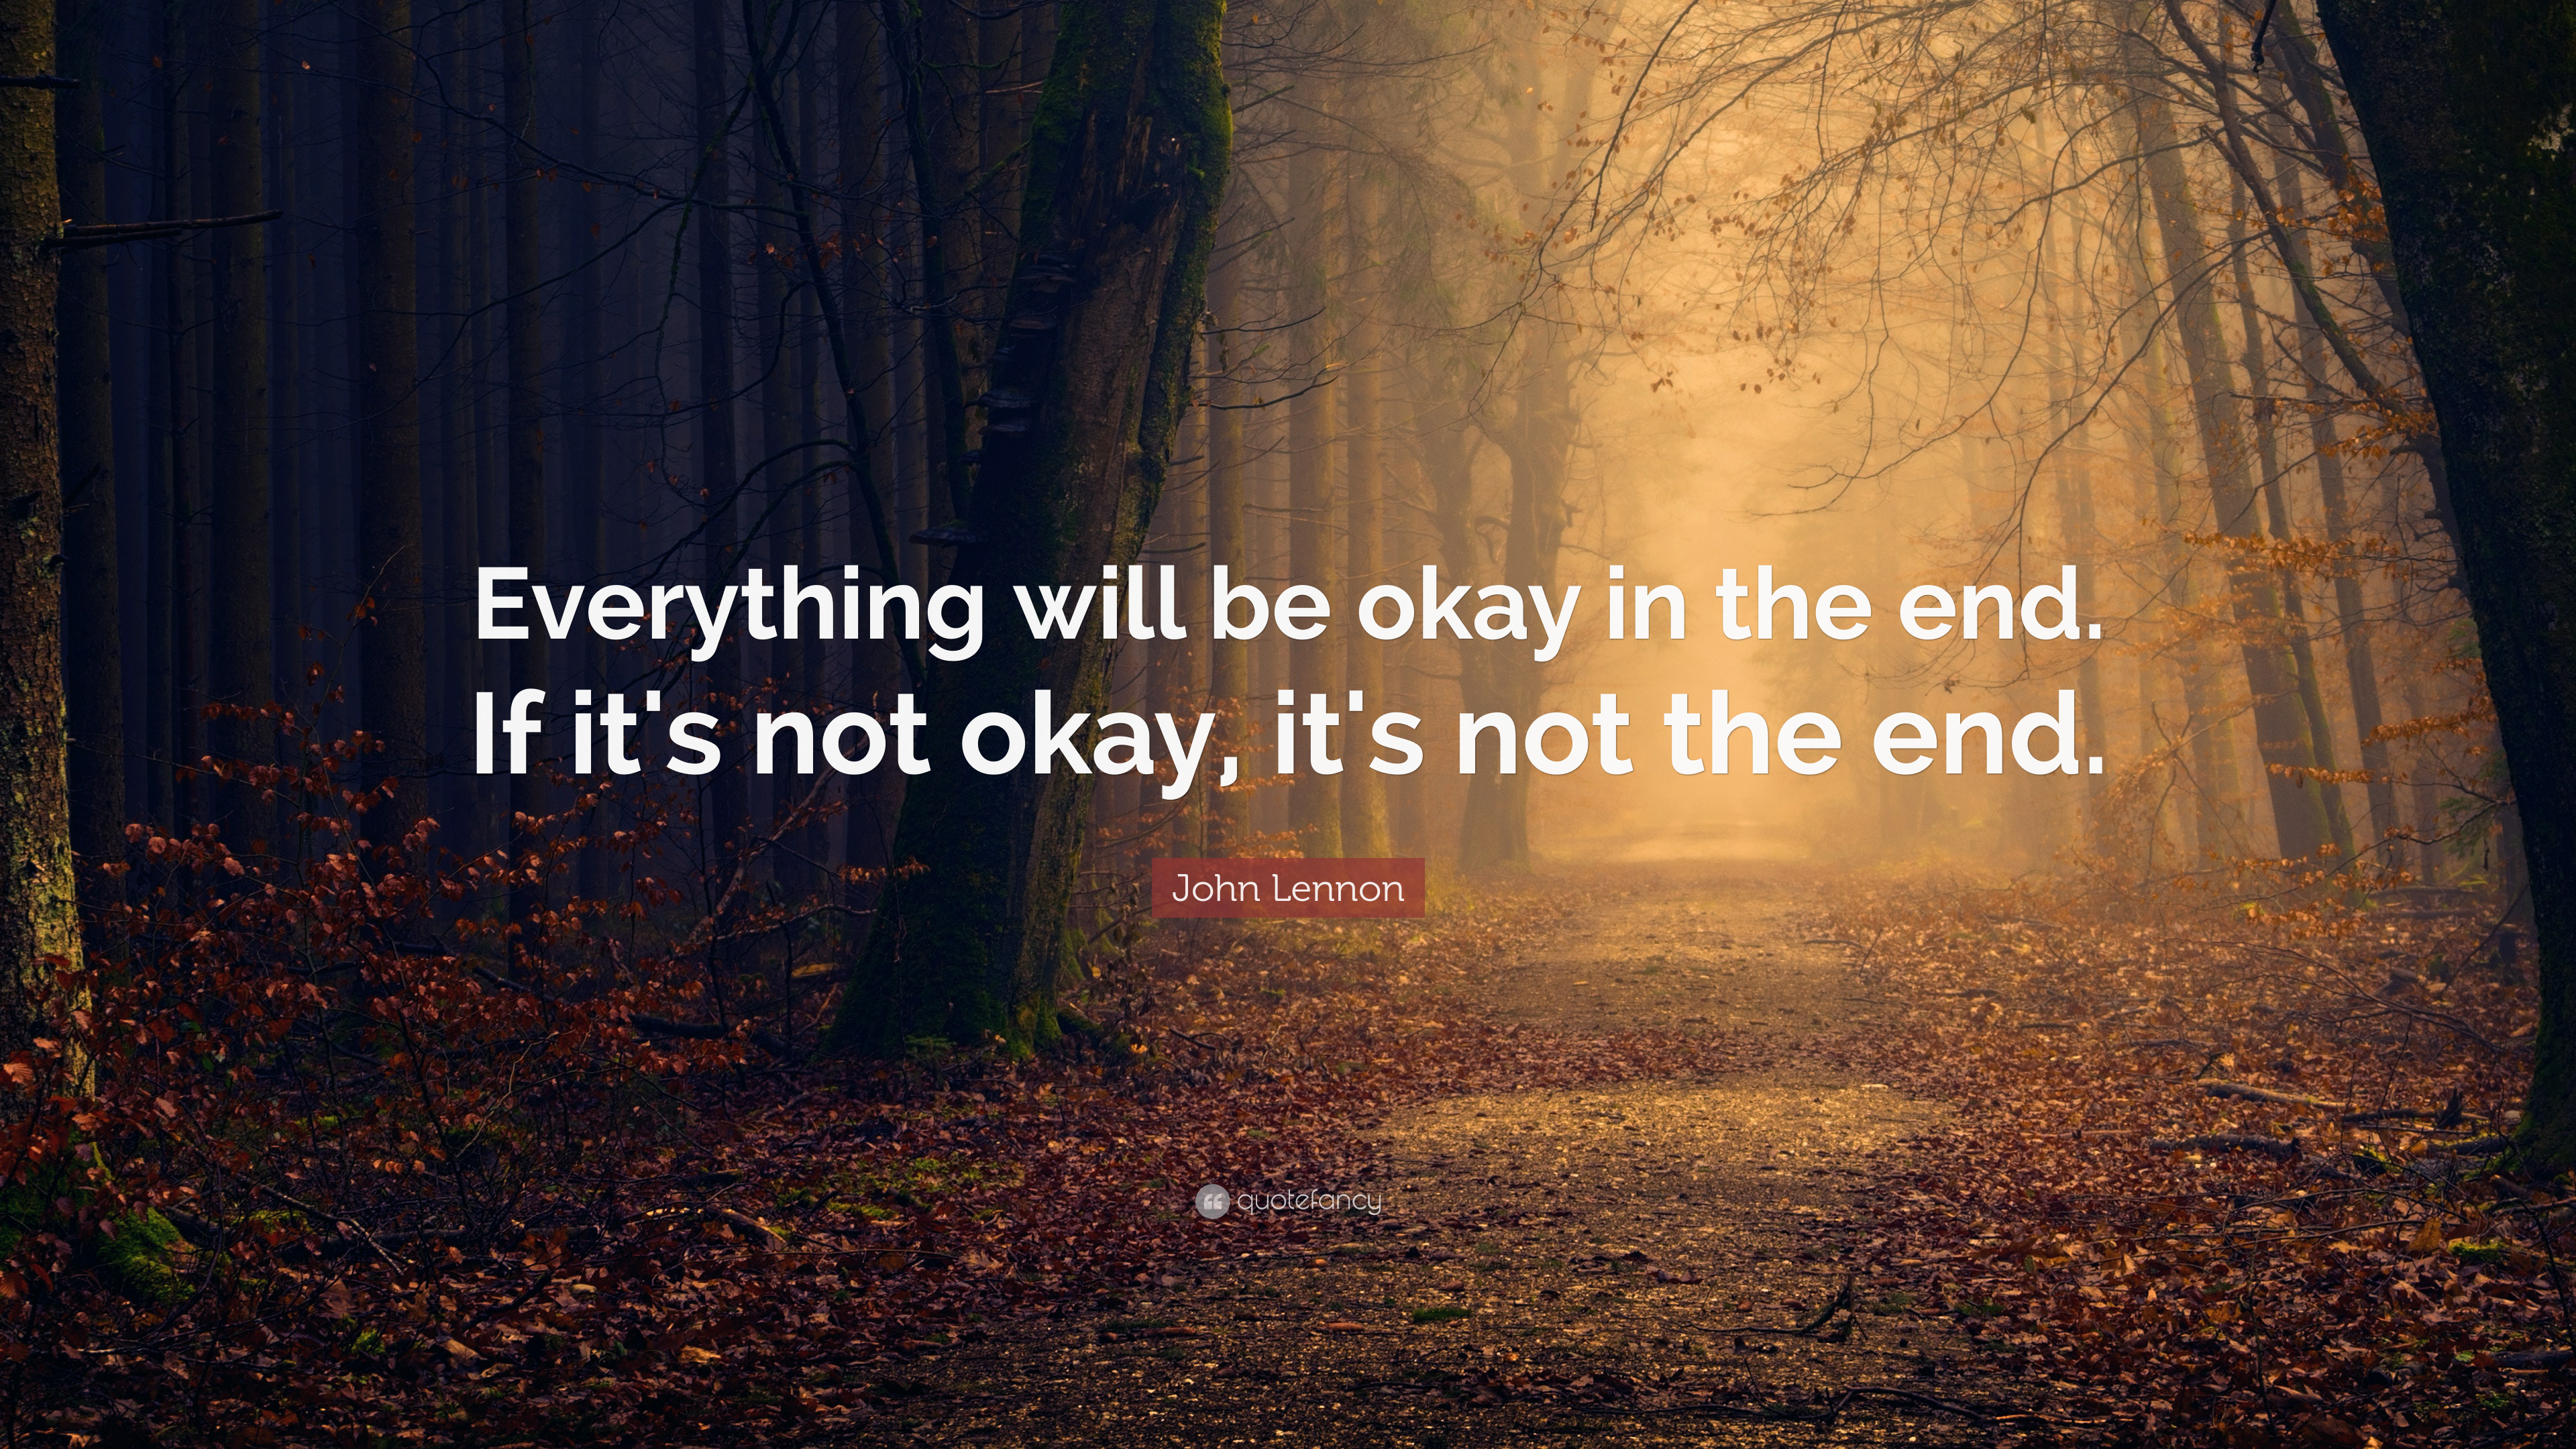 John Lennon Quote Everything Will Be Okay In The End If Its Not